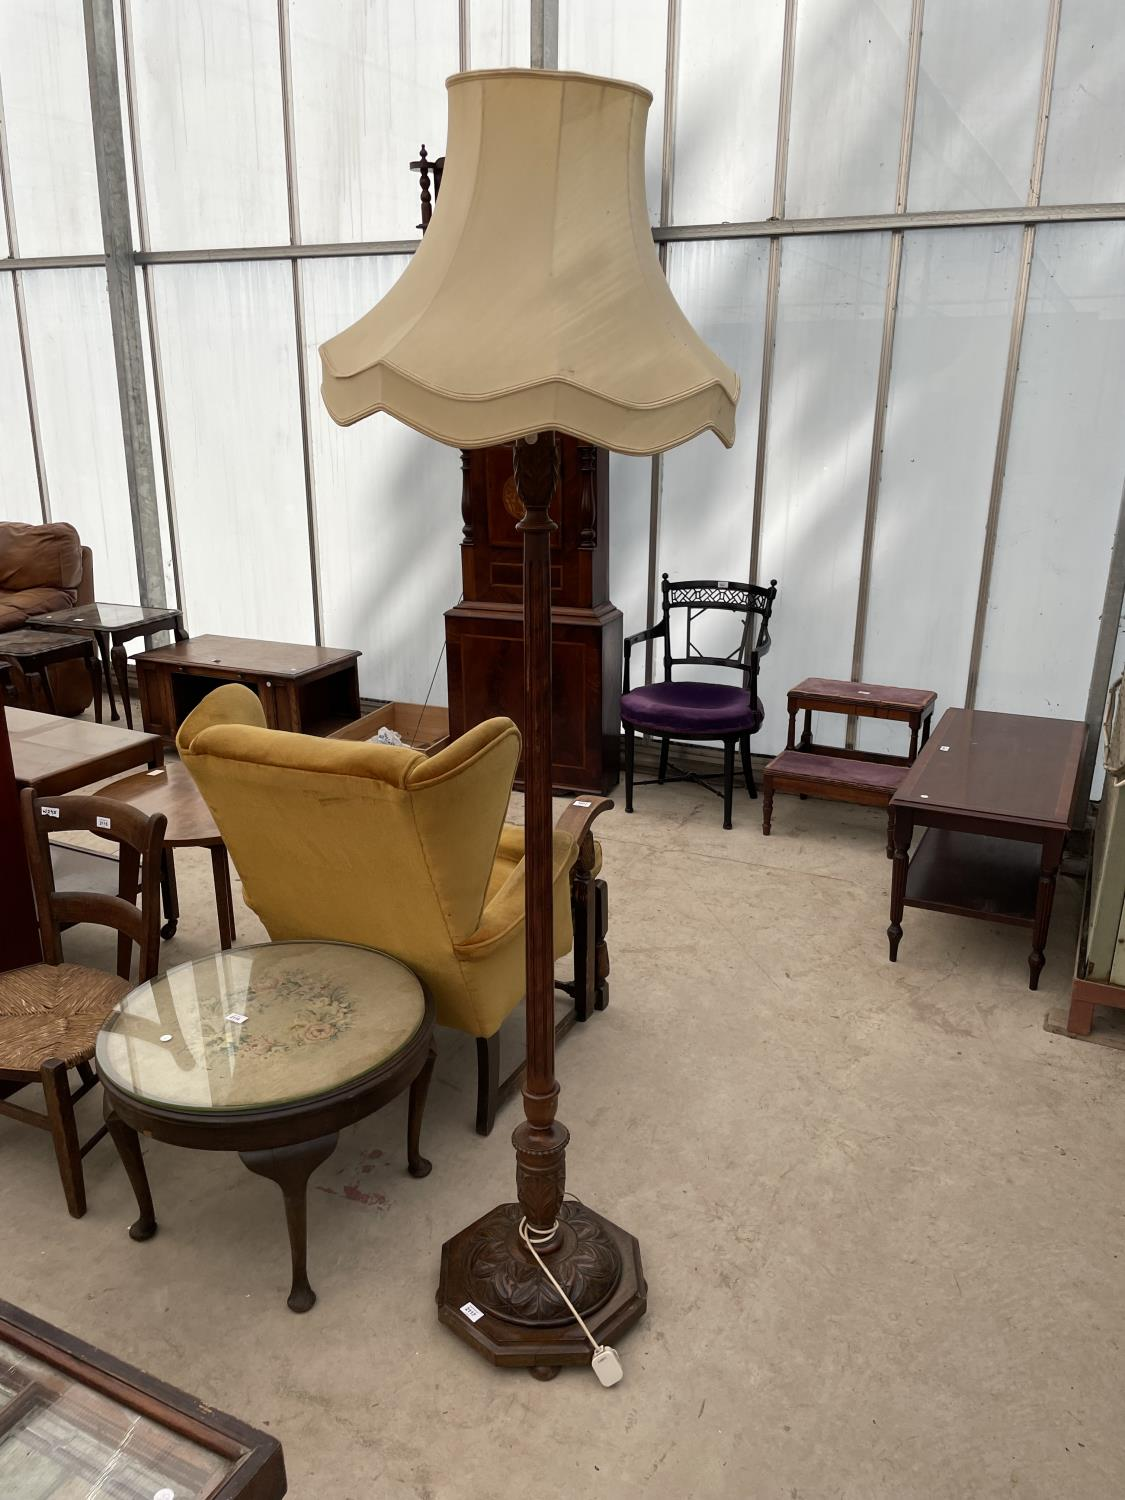 AN EARLY 20TH CENTURY STANDARD LAMP COMPLETE WITH SHADE, ON TURNED TAPERED COLUMN WITH PINEAPPLE